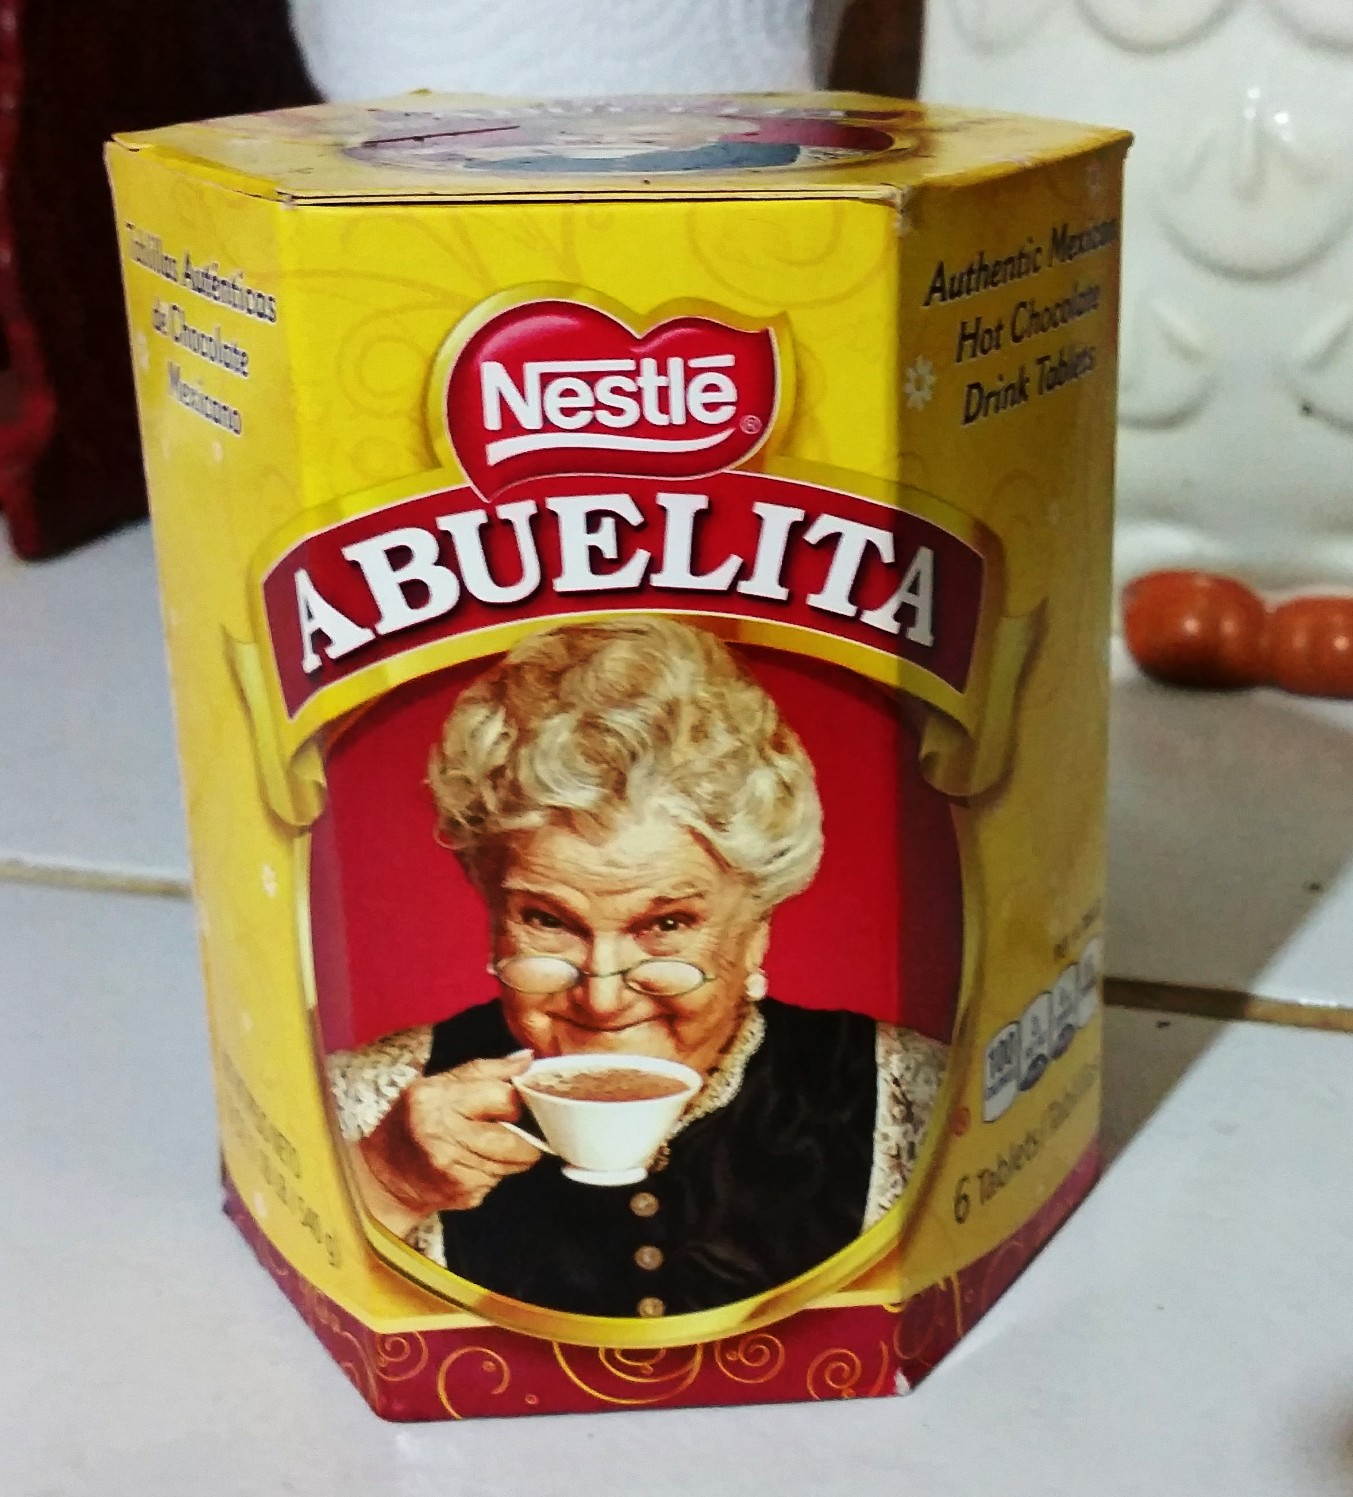 ABUELITA Chocolate Cake with a Kick - Indecisively Restless